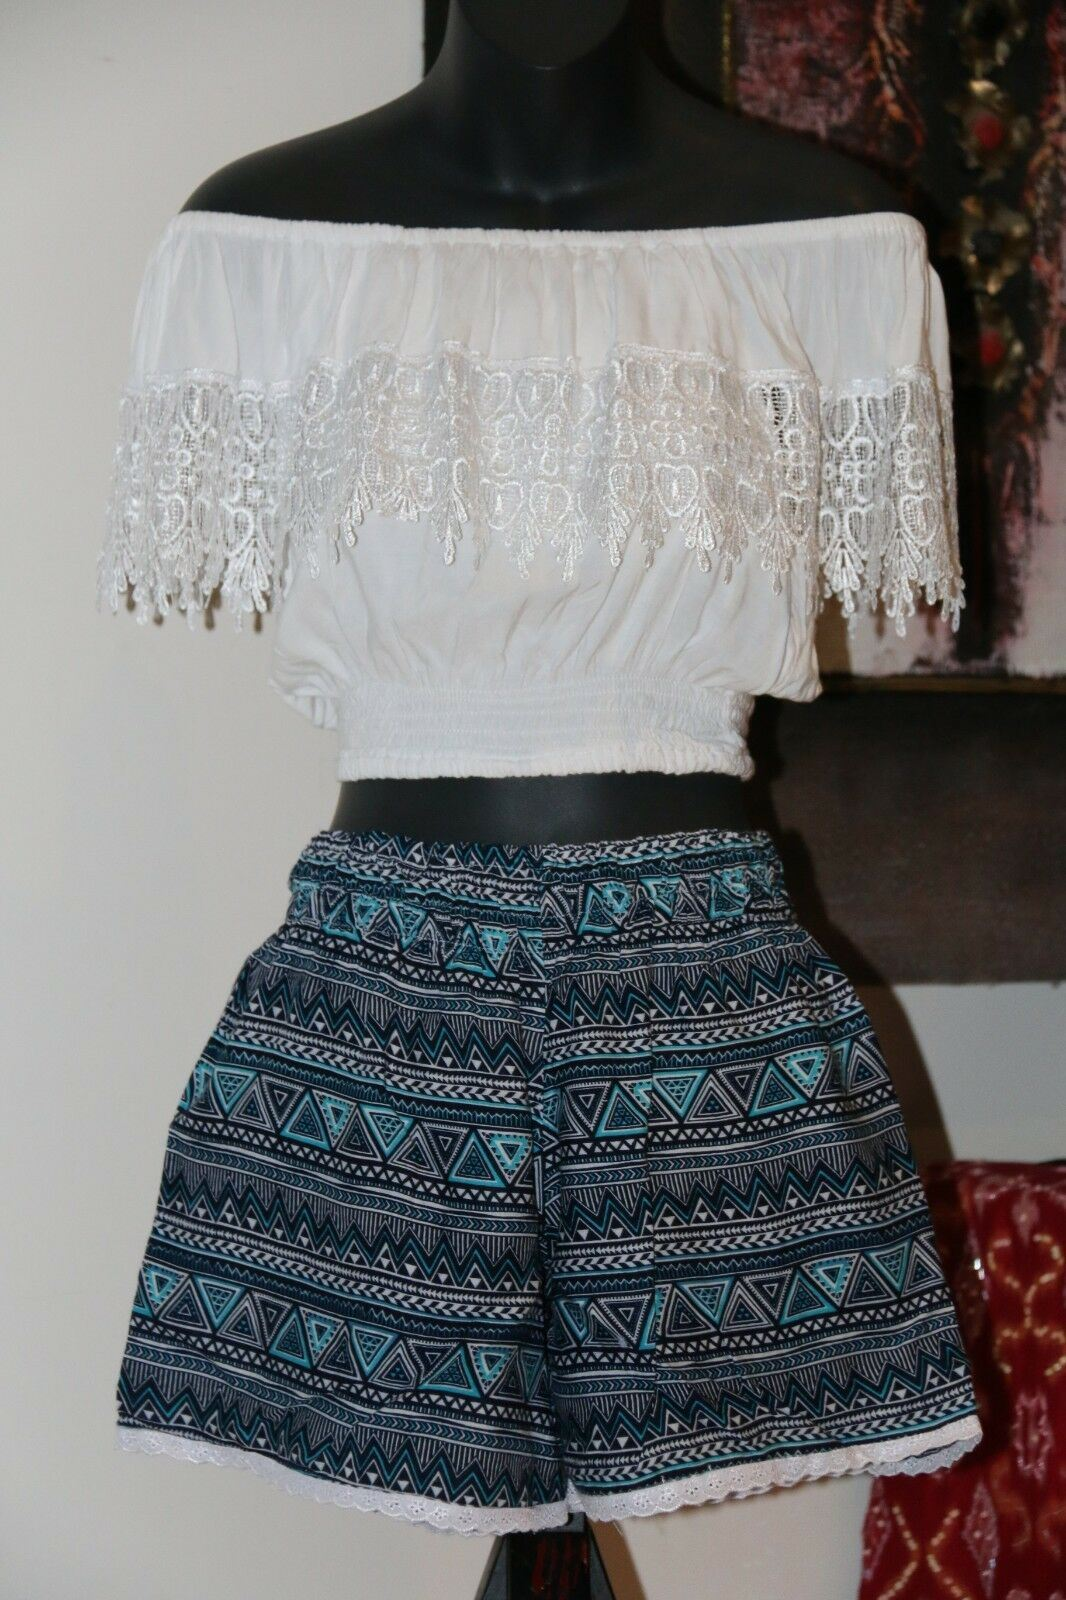 Ladies / Girls Shorts - Cotton Shorts - Bali Beach Shorts - MANY STYLES AVAIL.